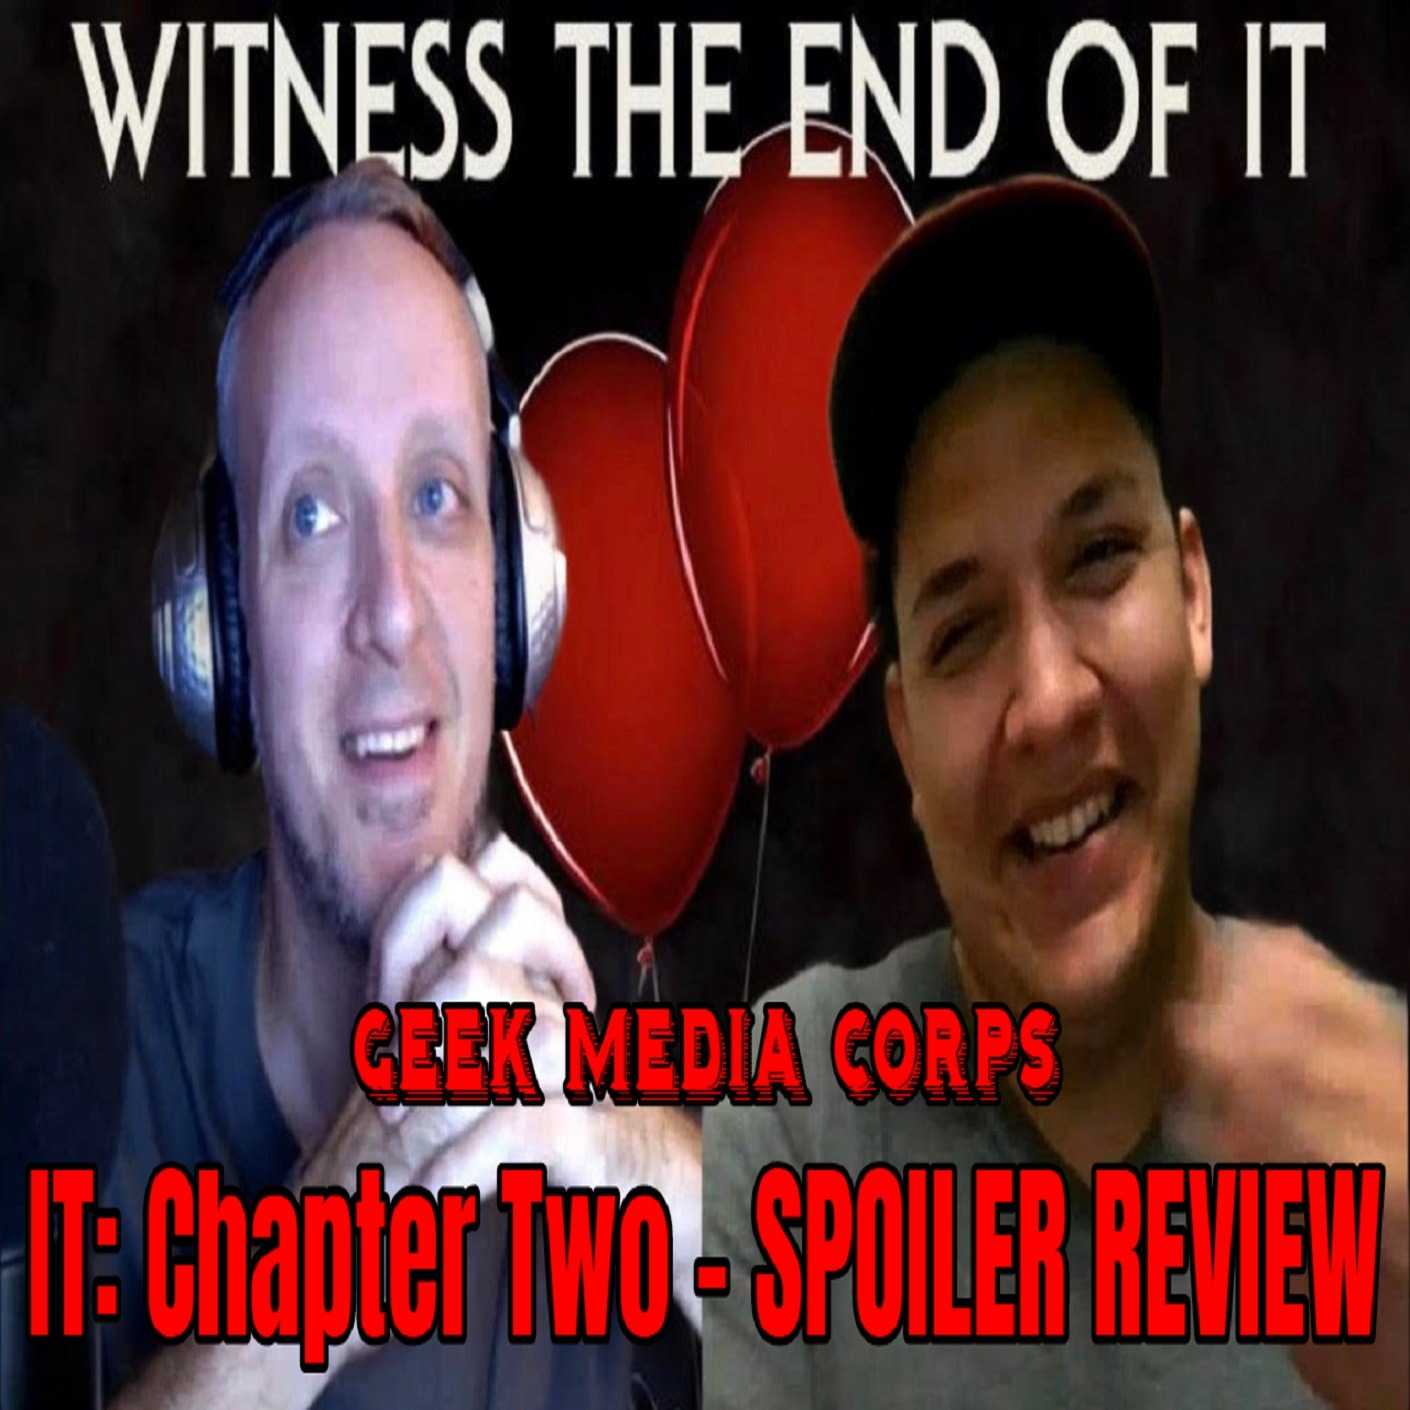 GVN Presents: Geek Media Corps Issue #127 - IT: Chapter Two Spoiler Review